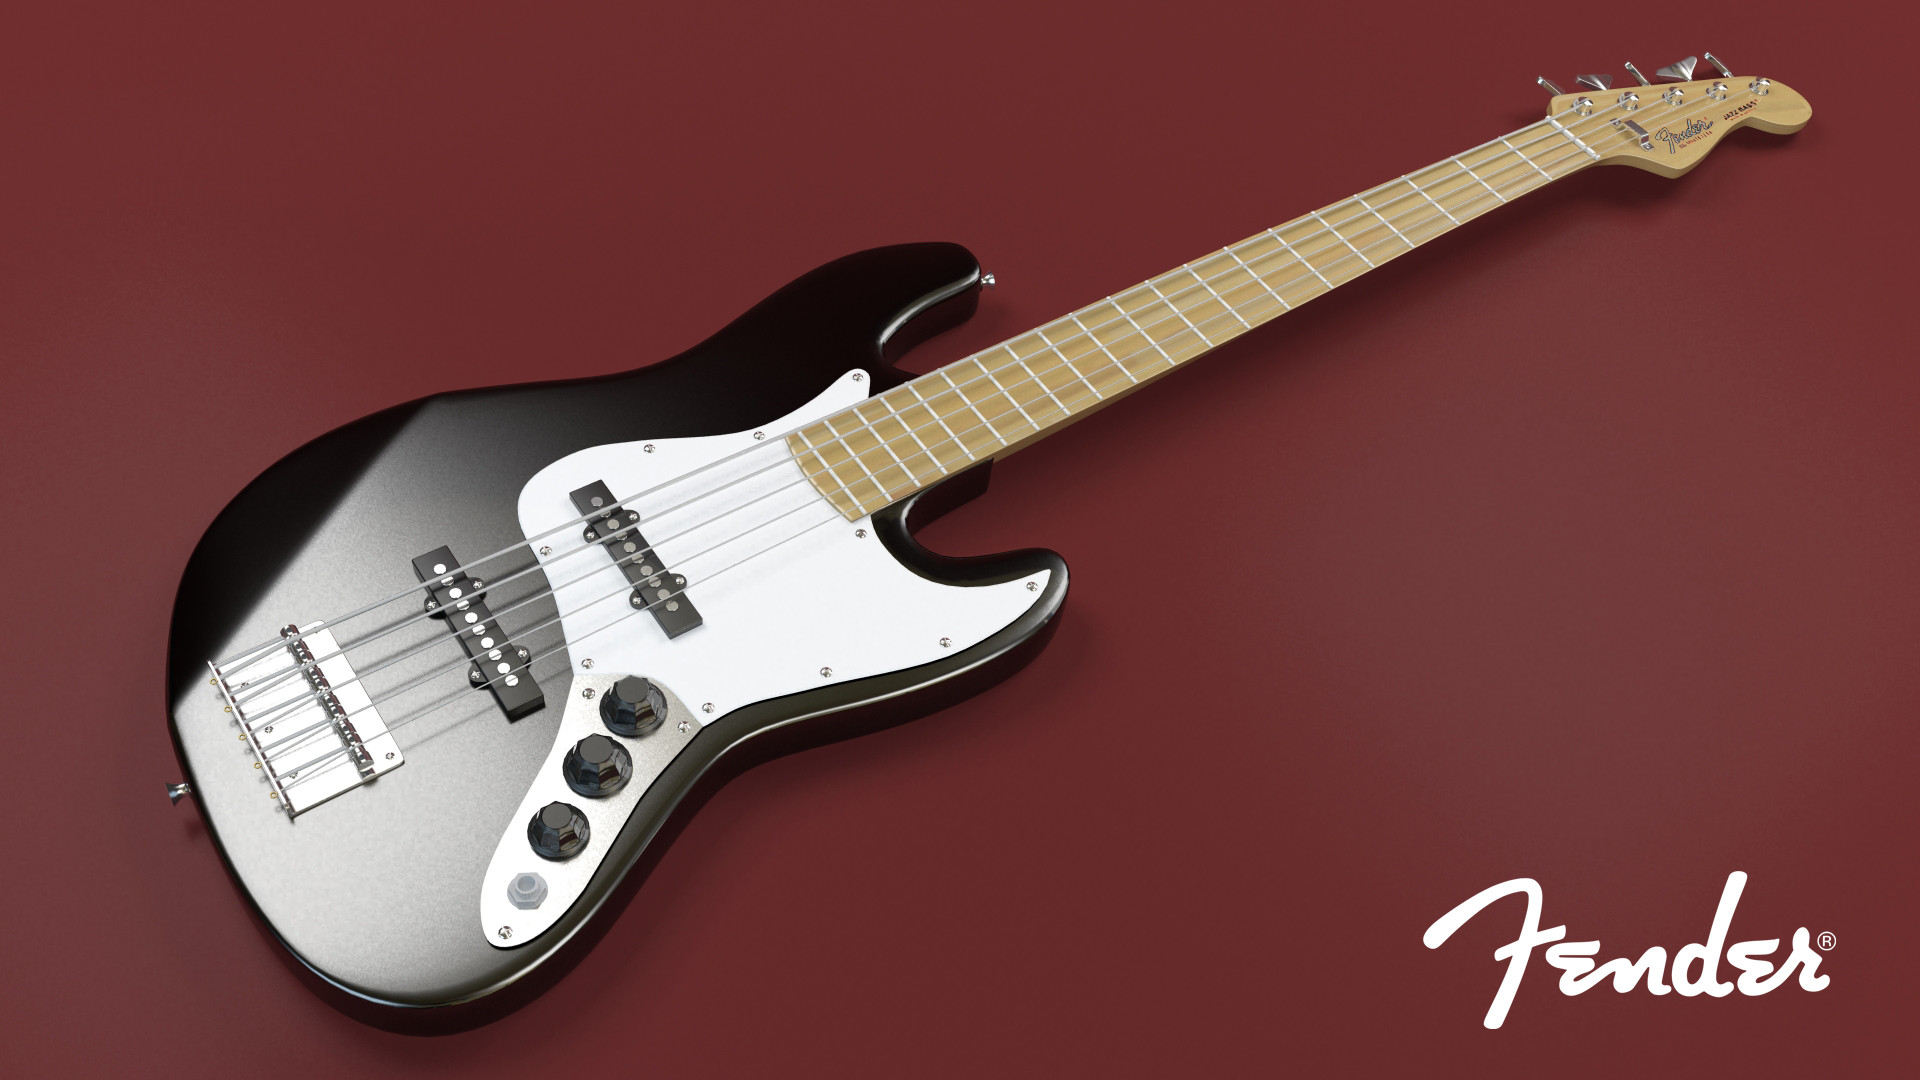 1920x1200 Wallpaperwiki Bass Guitar Desktop Background PIC WPC001496